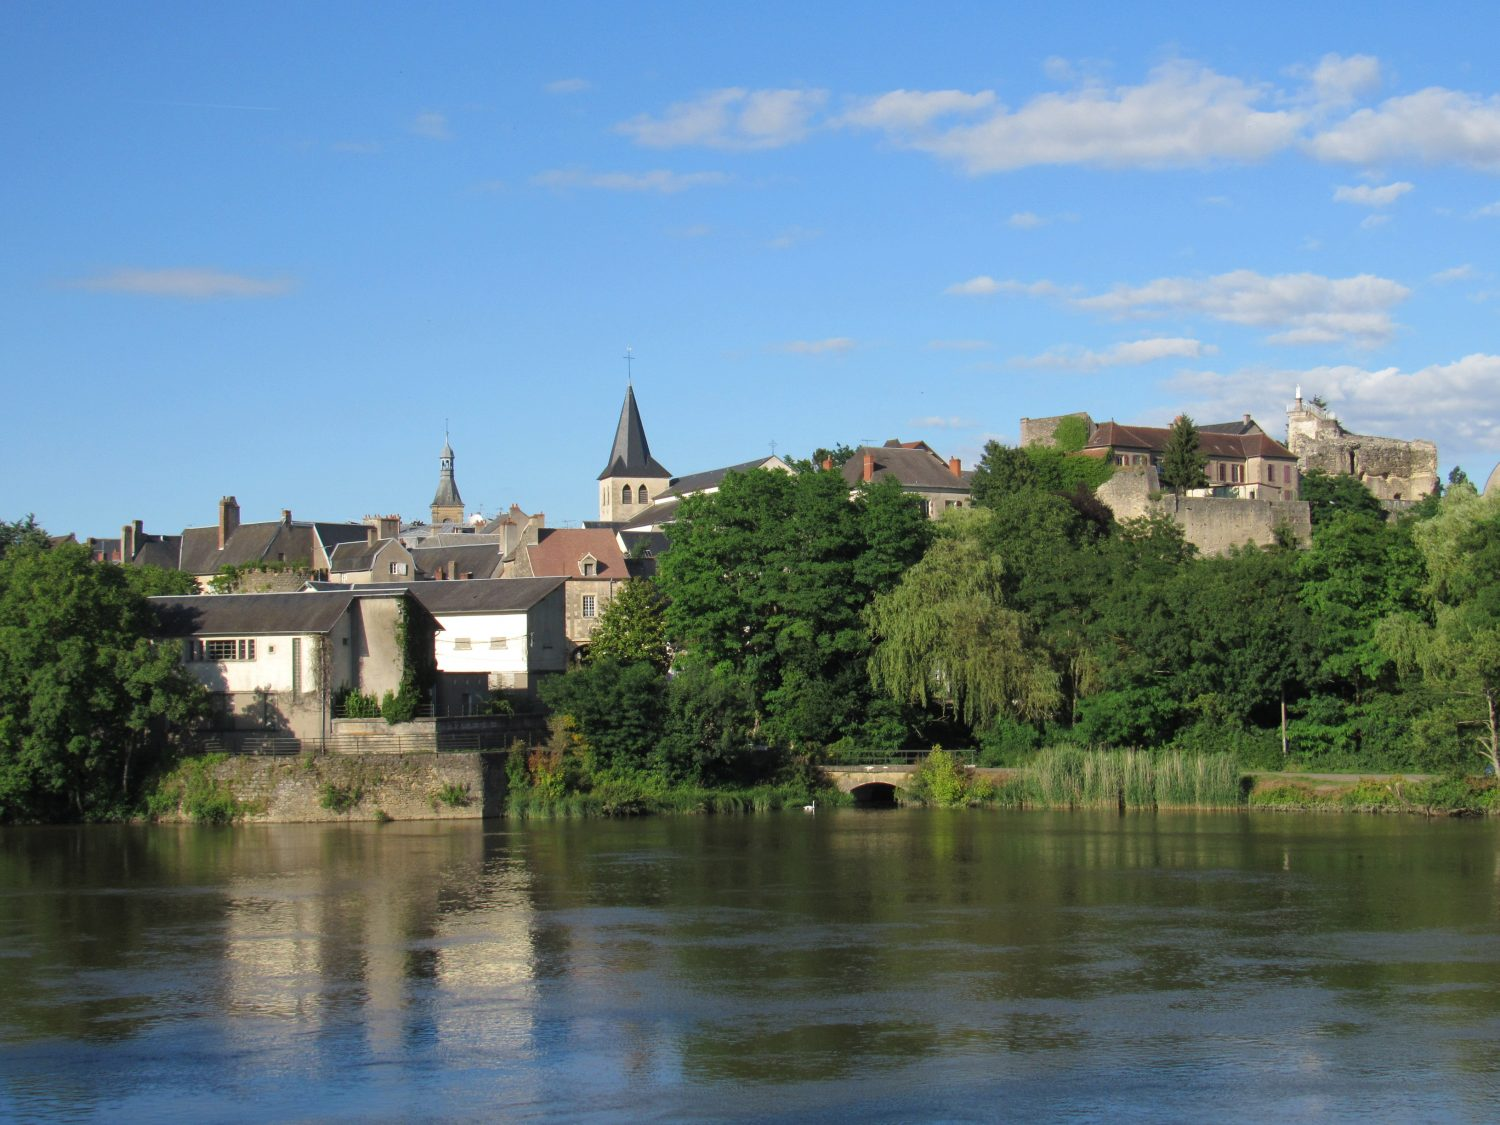 Looking over the River Loire to Decize old town